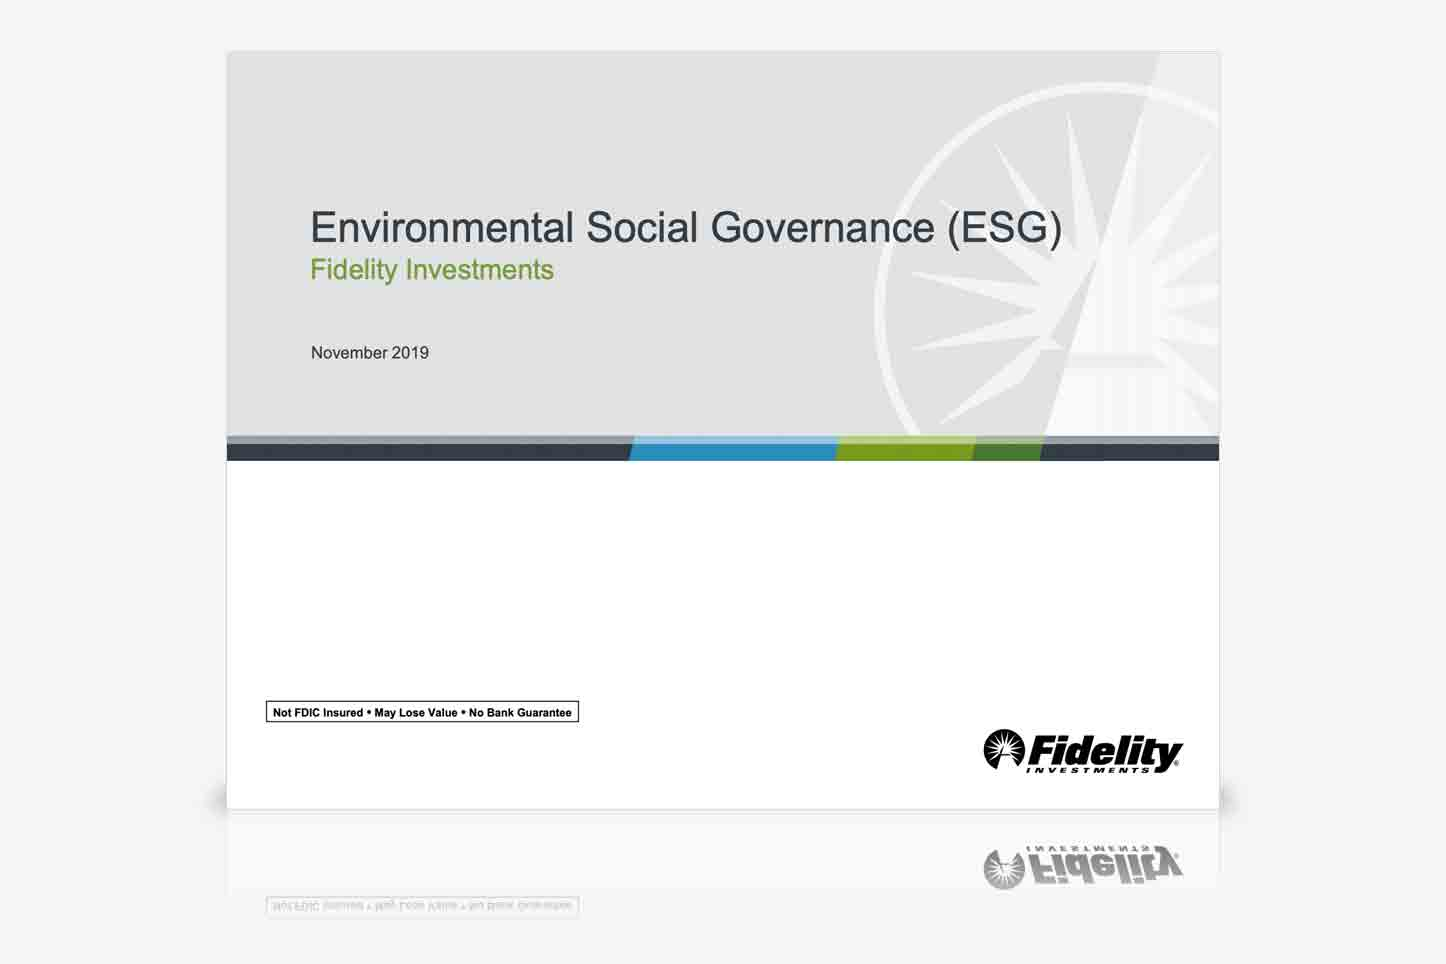 Learn More About Fidelity and ESG Investing